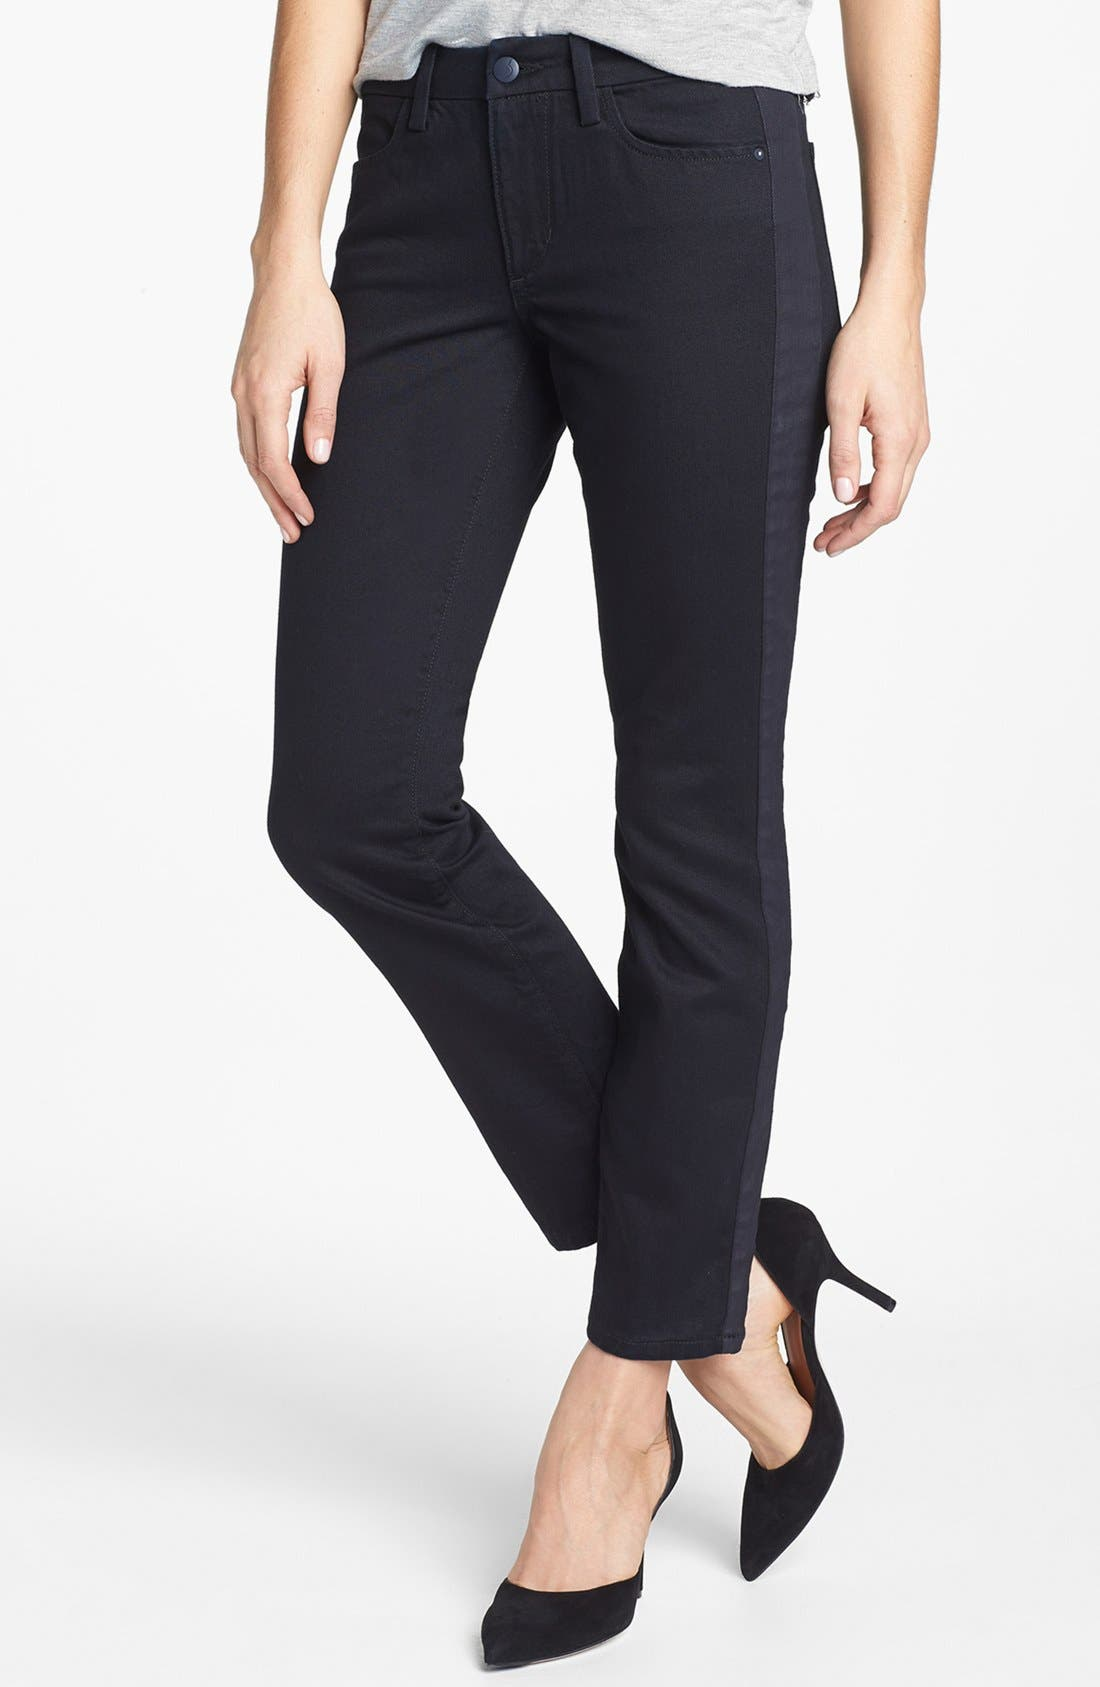 Alternate Image 1 Selected - Joe's Tuxedo Stripe Skinny Ankle Jeans (Pia)